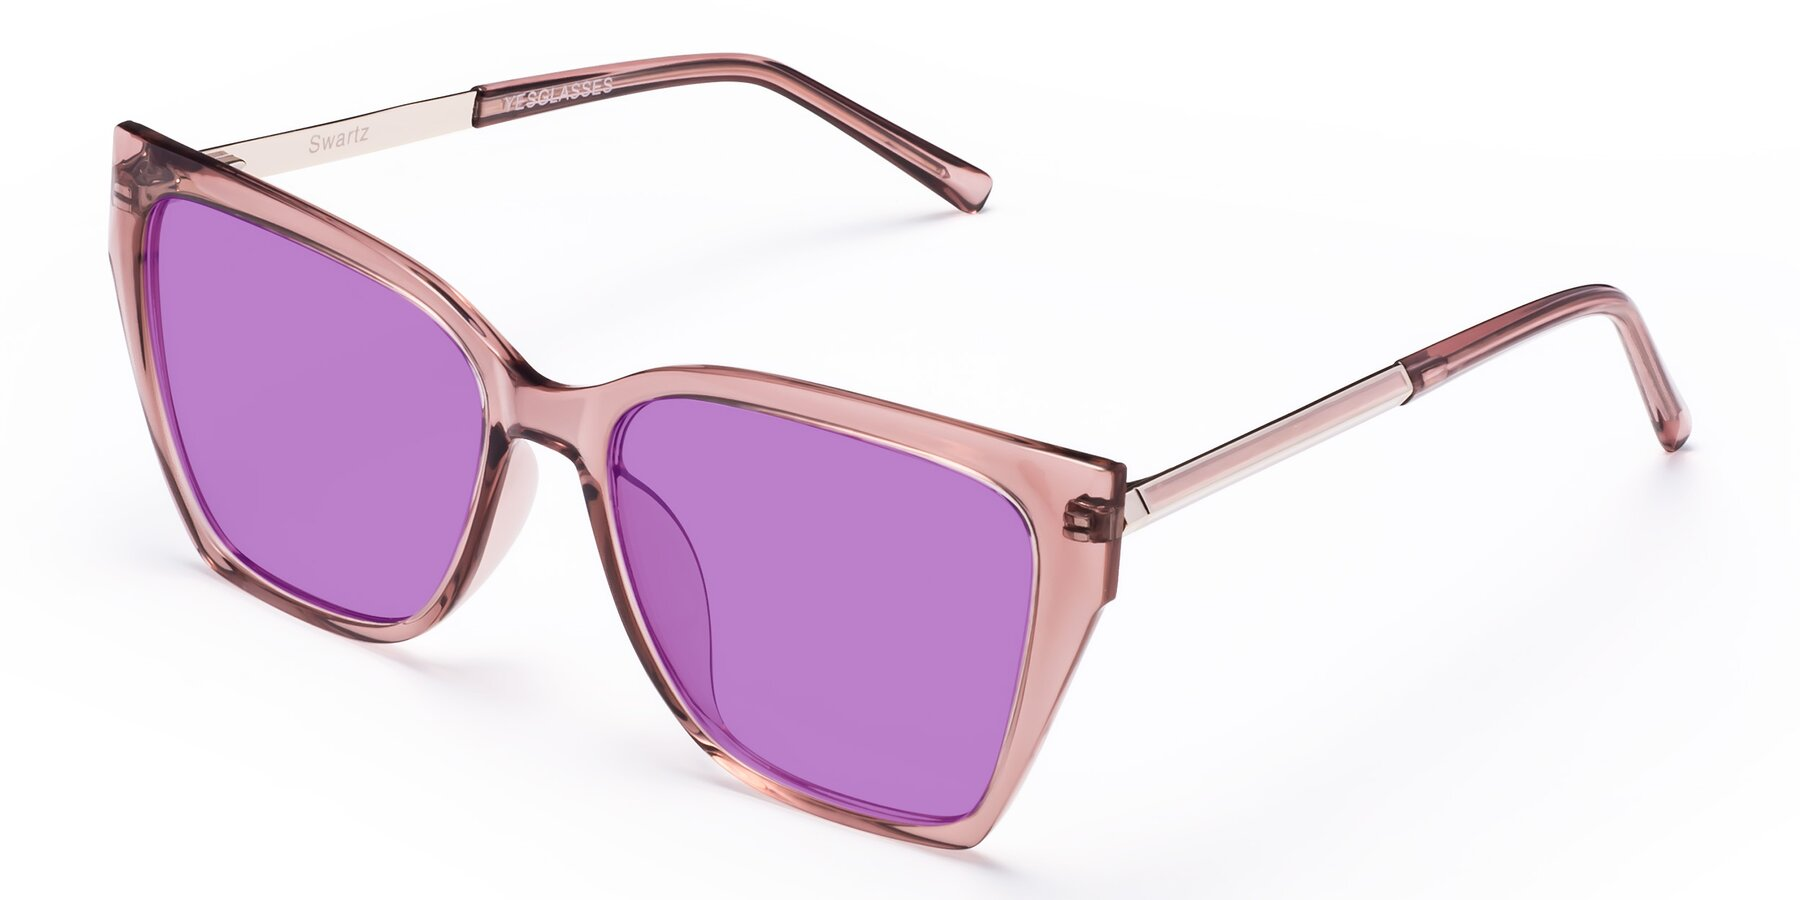 Angle of Swartz in Grape with Medium Purple Tinted Lenses